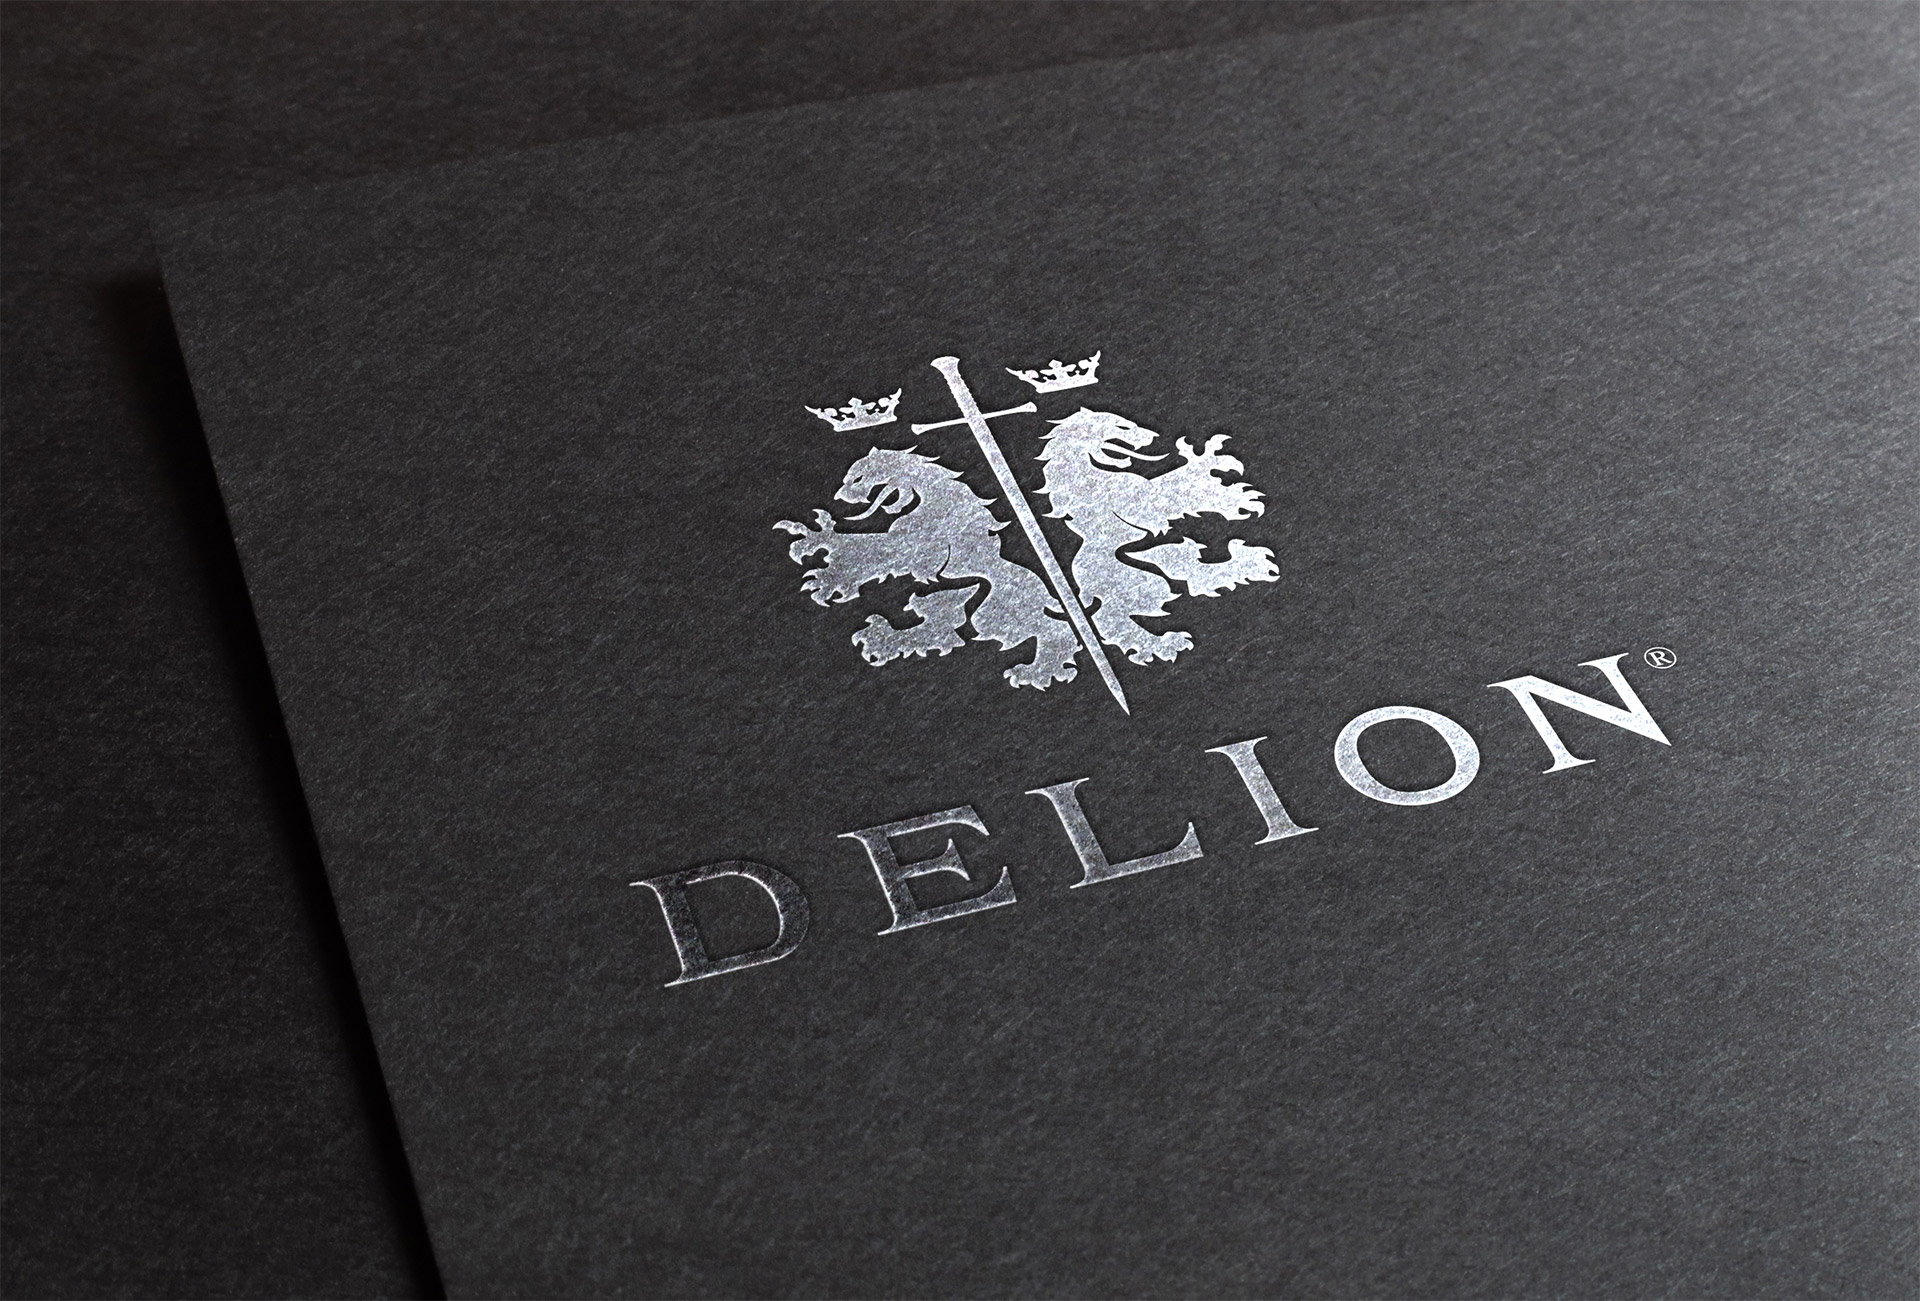 Delion logo on case - hot stamping